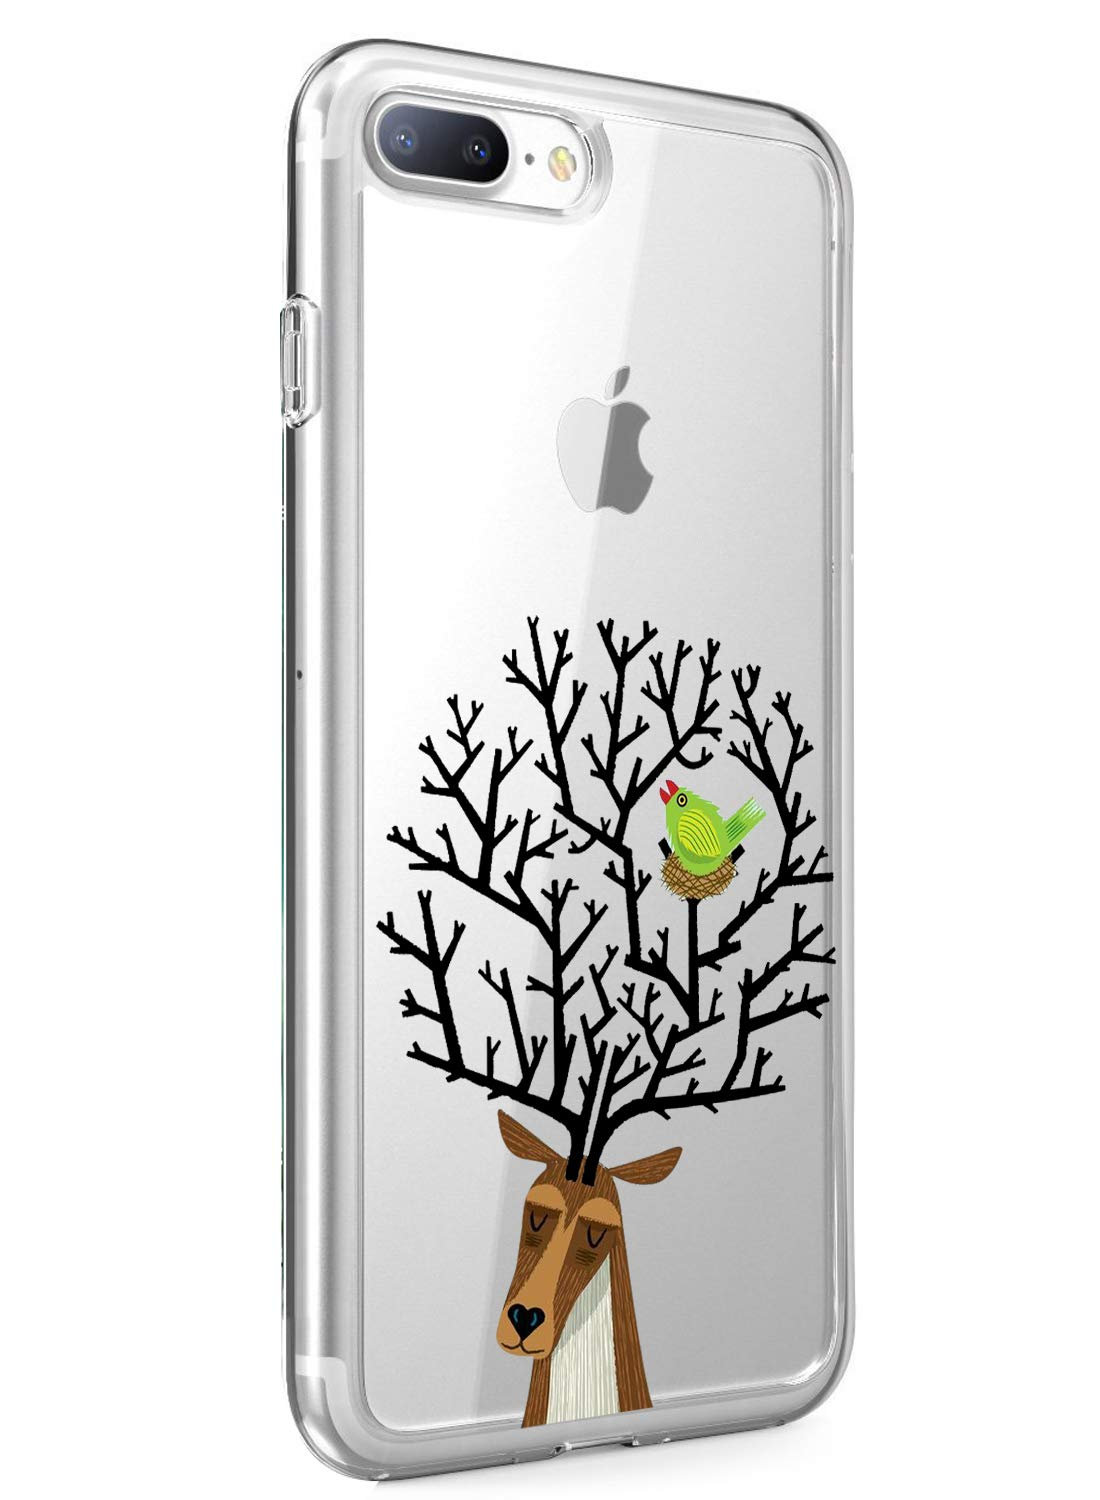 Oihxse Compatible with iPhone 6+/8+ 5.5'' Case Cover Crystal Clear Ultra Slim Lightweight Soft TPU Gel Bumper, Chic Fashion Pattern Design Transparent [Original Beauty] Shockproof Skin, Magpie Elk Oihxse ✨【SLIM FIT】ONLY compatible with iPhone 7+/8+Plus without bubbles, bubbles smudges, slippy and clinging, which provide a great hand feel & comfortable grip, easy put in and take off from pockets. ✨【CRYSTAL CLEAR】Cute and stylish pattern prints on the crystal transparent slim IPhone 7+/8+Plus case, not only shows off the original beauty but adds more chic, fashion and elegant sense, makes you stand out from crowd and eye-catching. ✨【PREMIUM MATERIAL】Made from nontoxic and tasteless flexible TPU material, non fade and peel off. It can resist Iphone 7+/8+Plus bumps, drops, scratches, impacts, shocks and fingerprint. 1